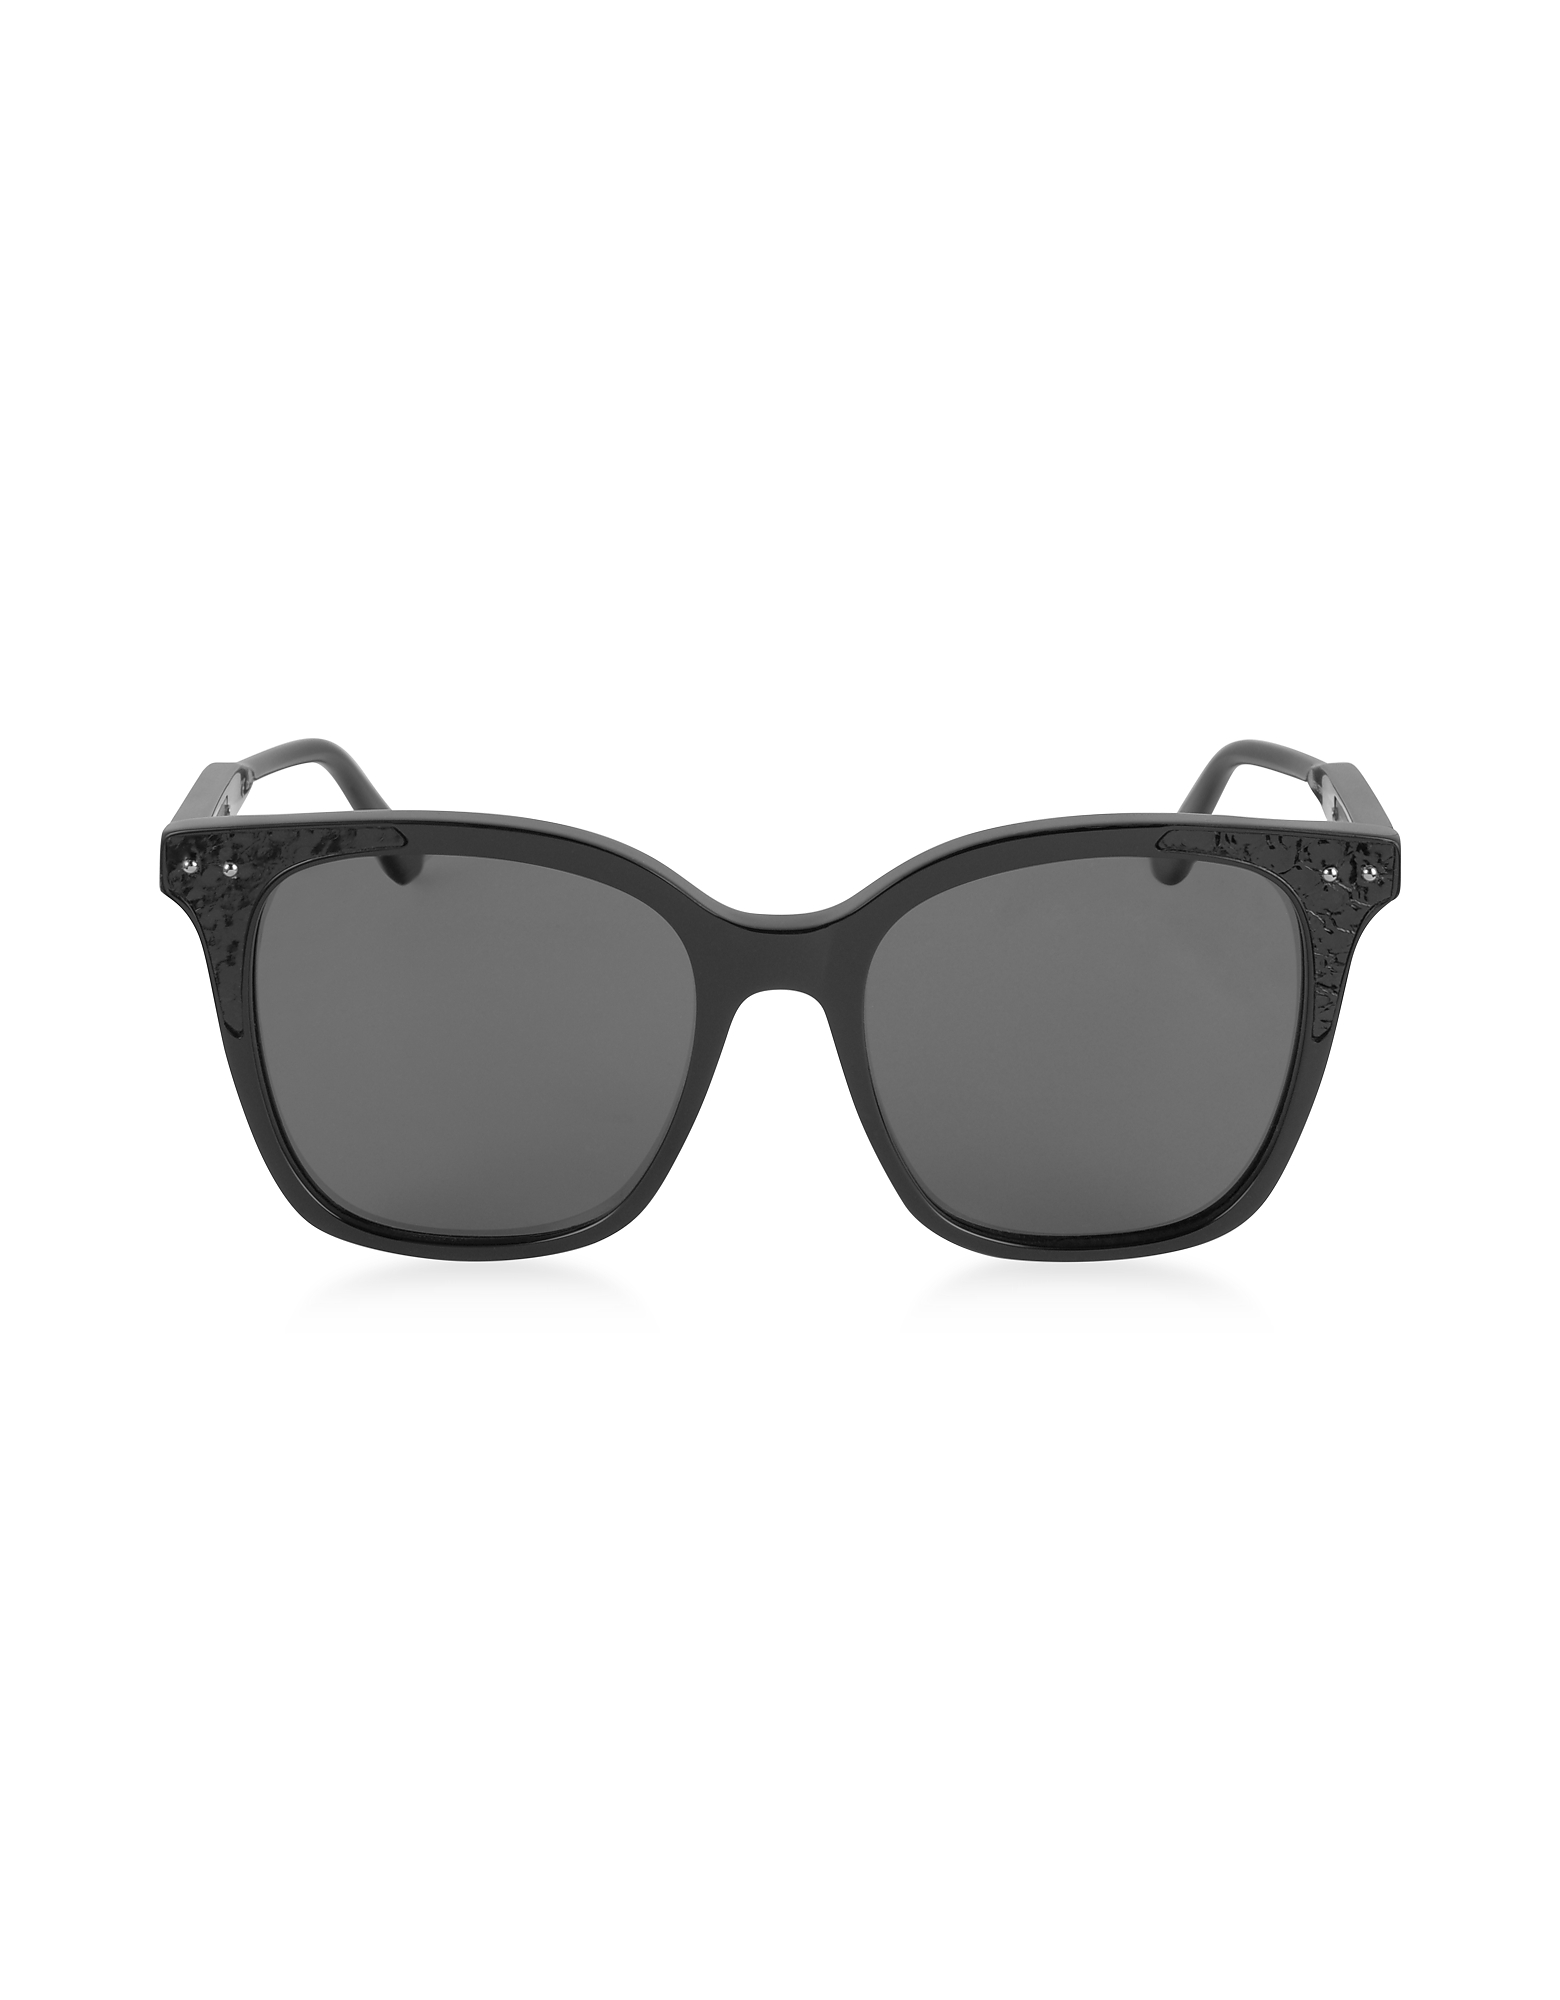 Bottega Veneta Designer Sunglasses, BV0118S 005 Black Acetate Frame Women's Polarized Sunglasses